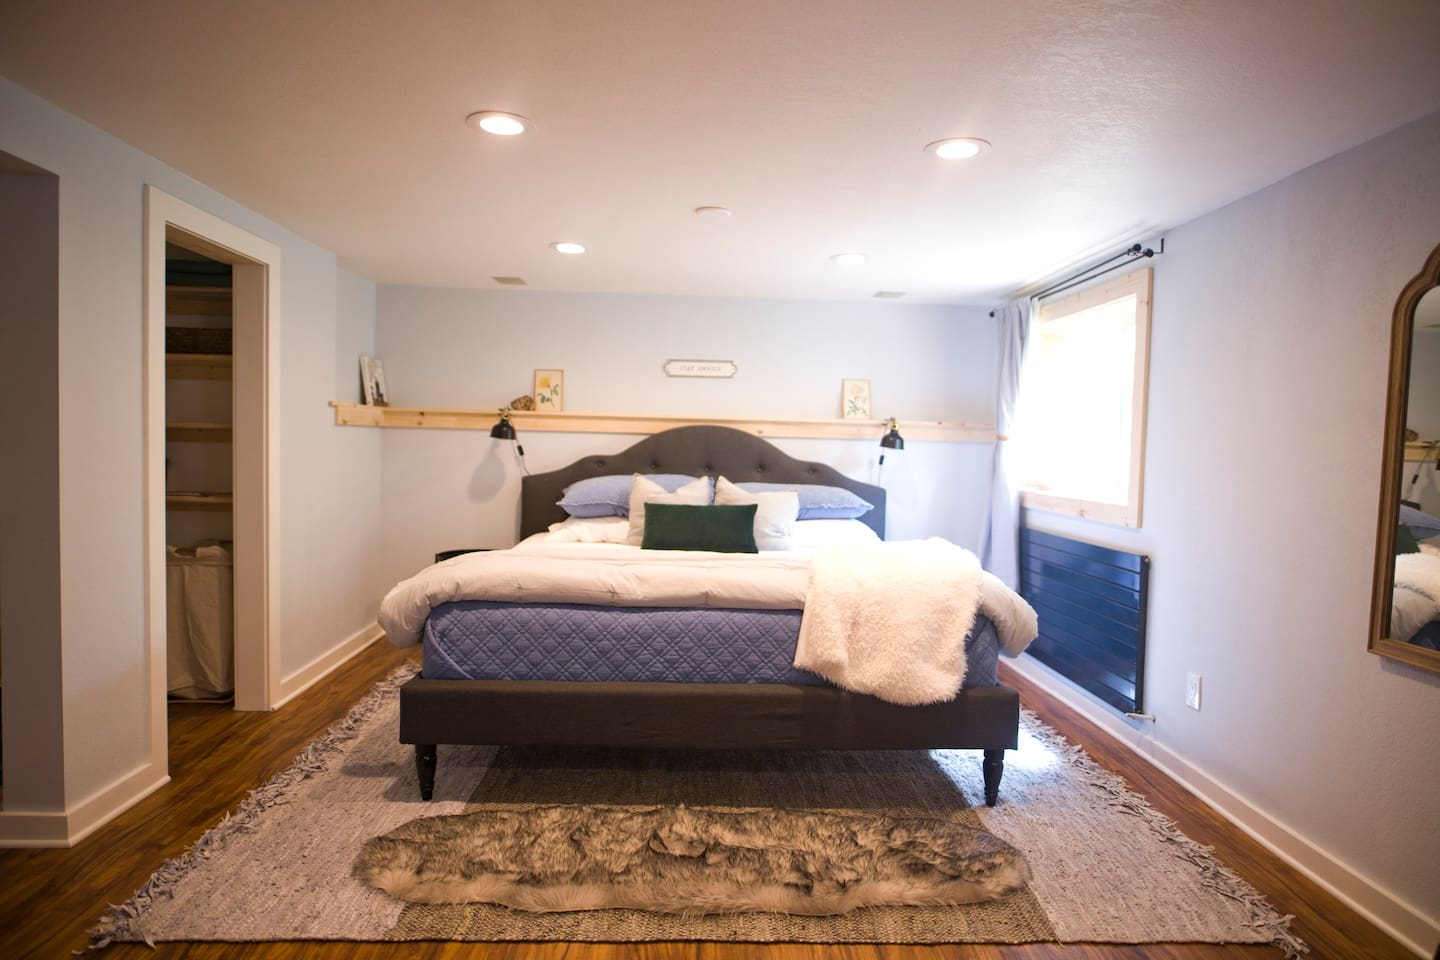 """""""It was hard getting out of bed because it was so comfortable. I had to ask the host what kind of mattress they purchased because I want to get one myself!"""" - Gloria, a happy guest"""